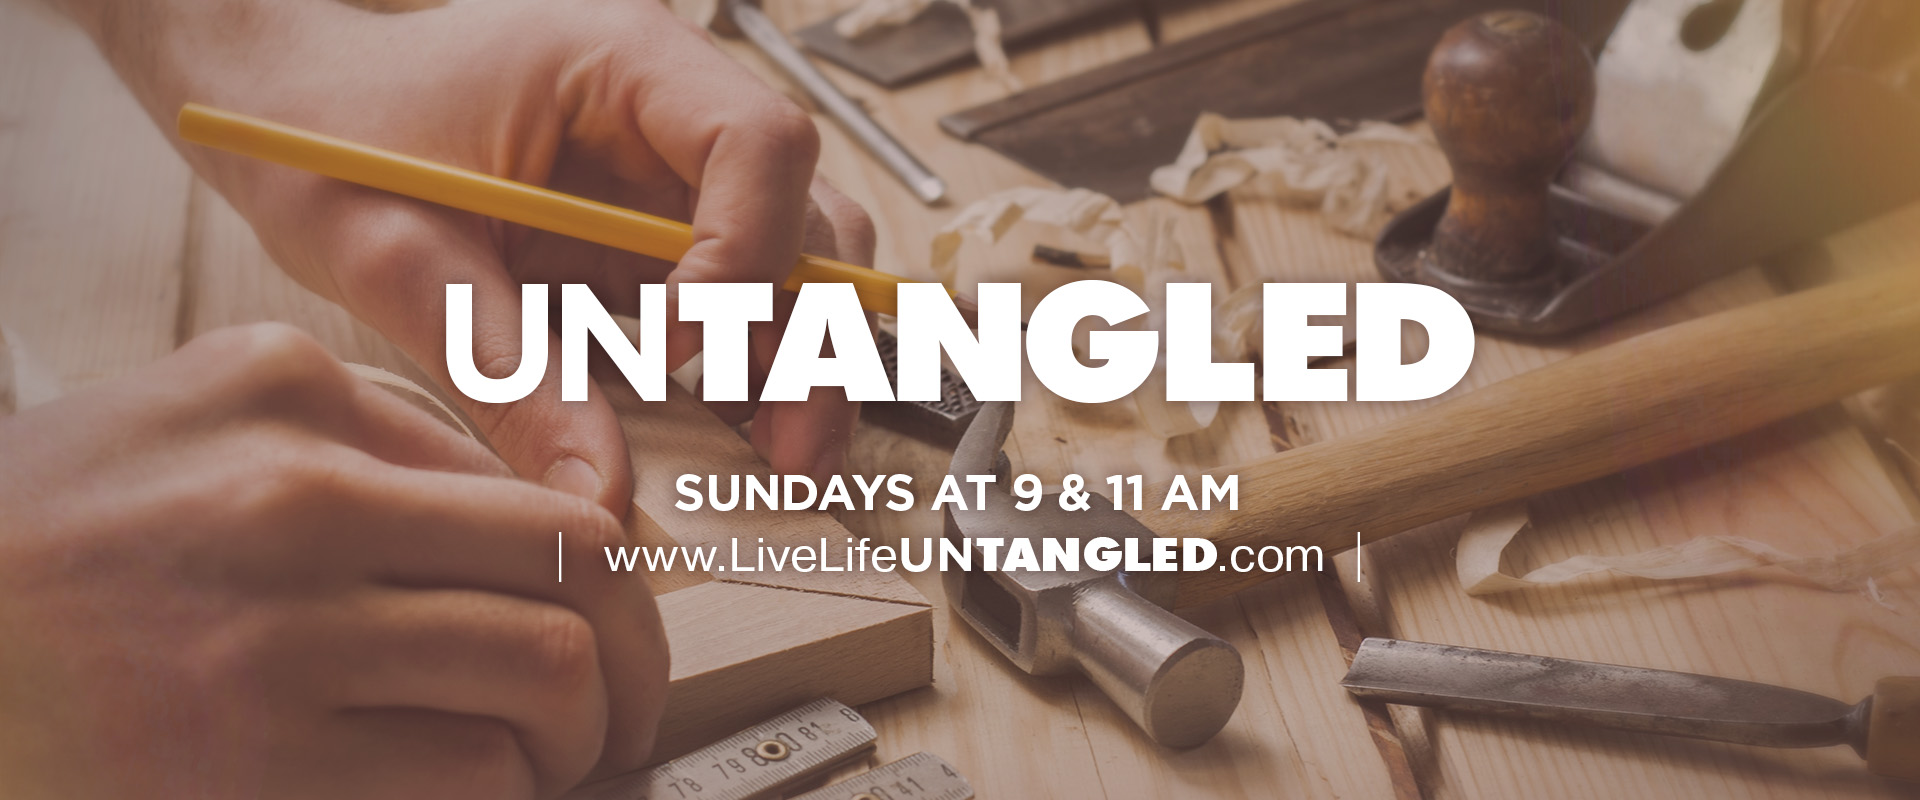 UNTANGLED - 'Work' - Sundays at 9 and 11 am